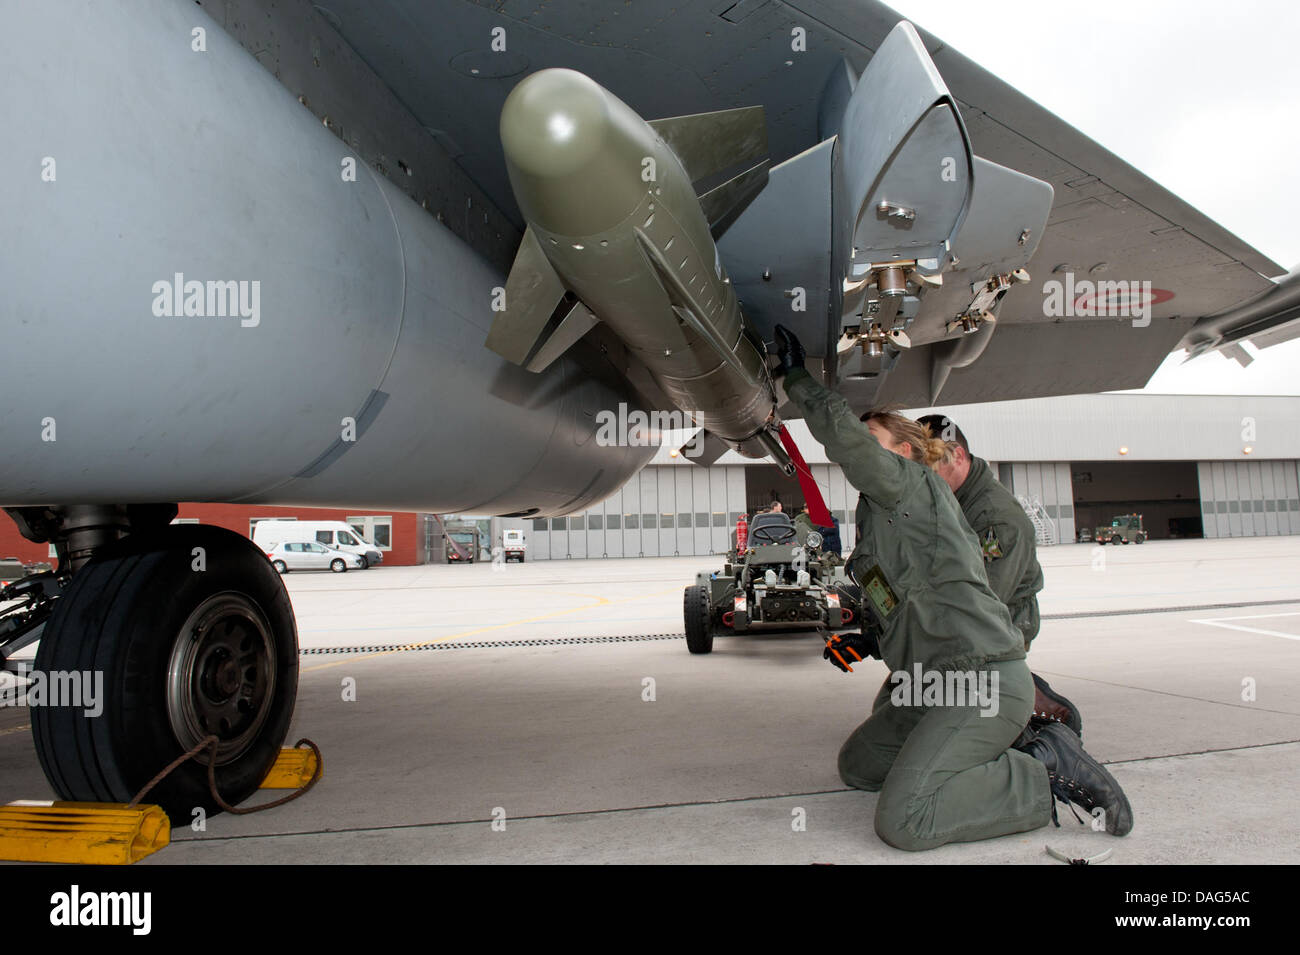 Engineers go through last checkups at the Rafale Jet on a French airbase in Saint-Dizier, France, 19 March 2011. - Stock Image